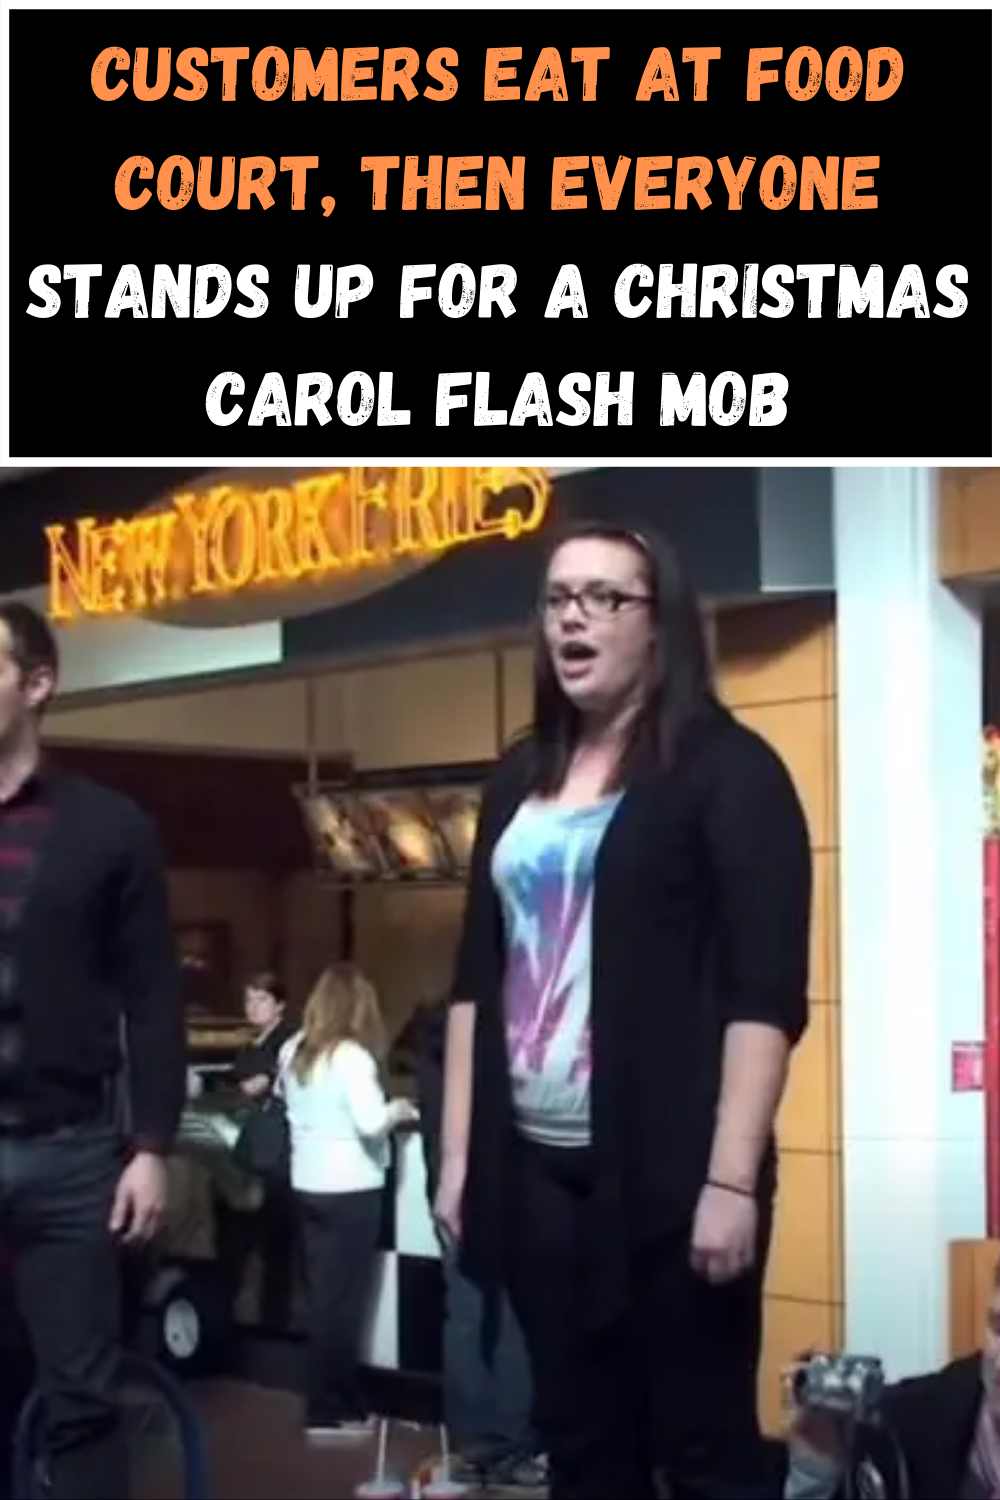 Flash Mob Christmas 2020 Customers eat at food court, then everyone stands up for a